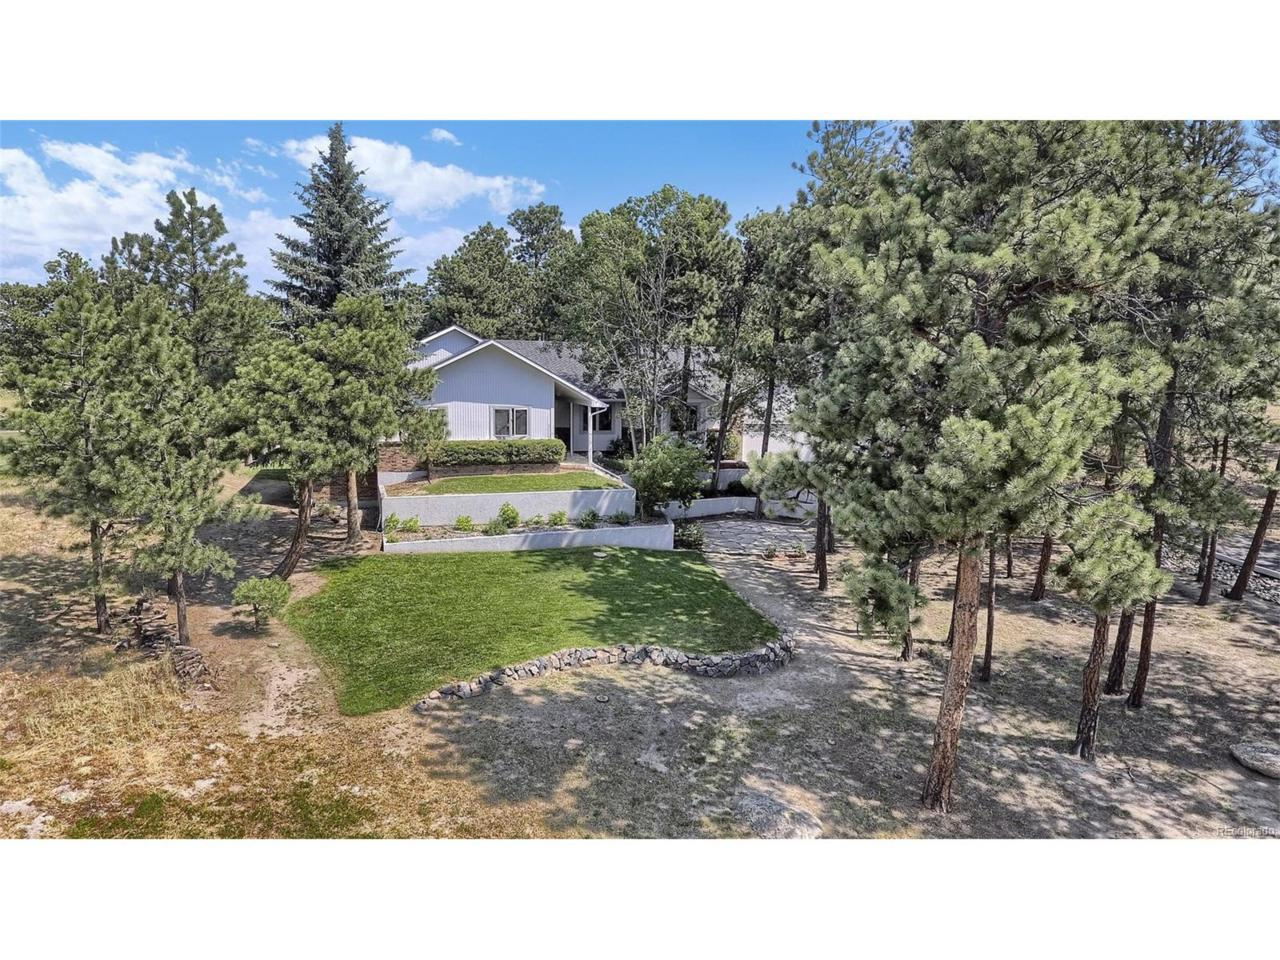 18930 Augusta Drive, Monument, CO 80132 (MLS #7892003) :: 8z Real Estate